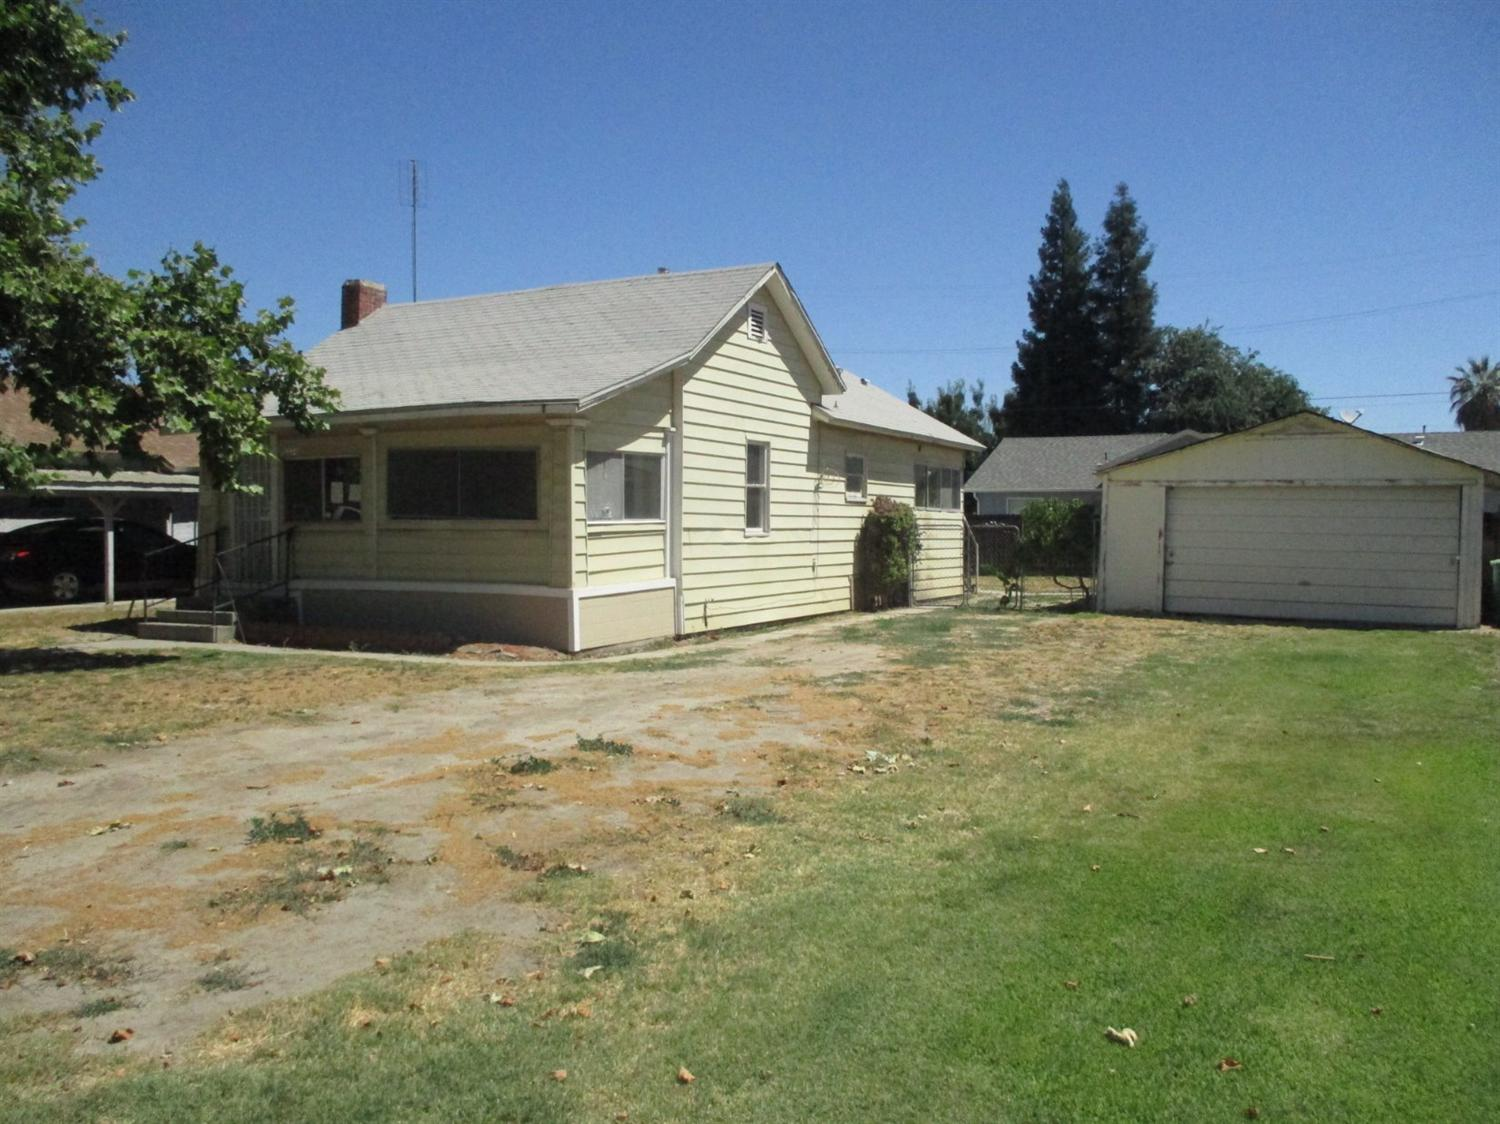 13534 S Quince, Caruthers, CA 93609